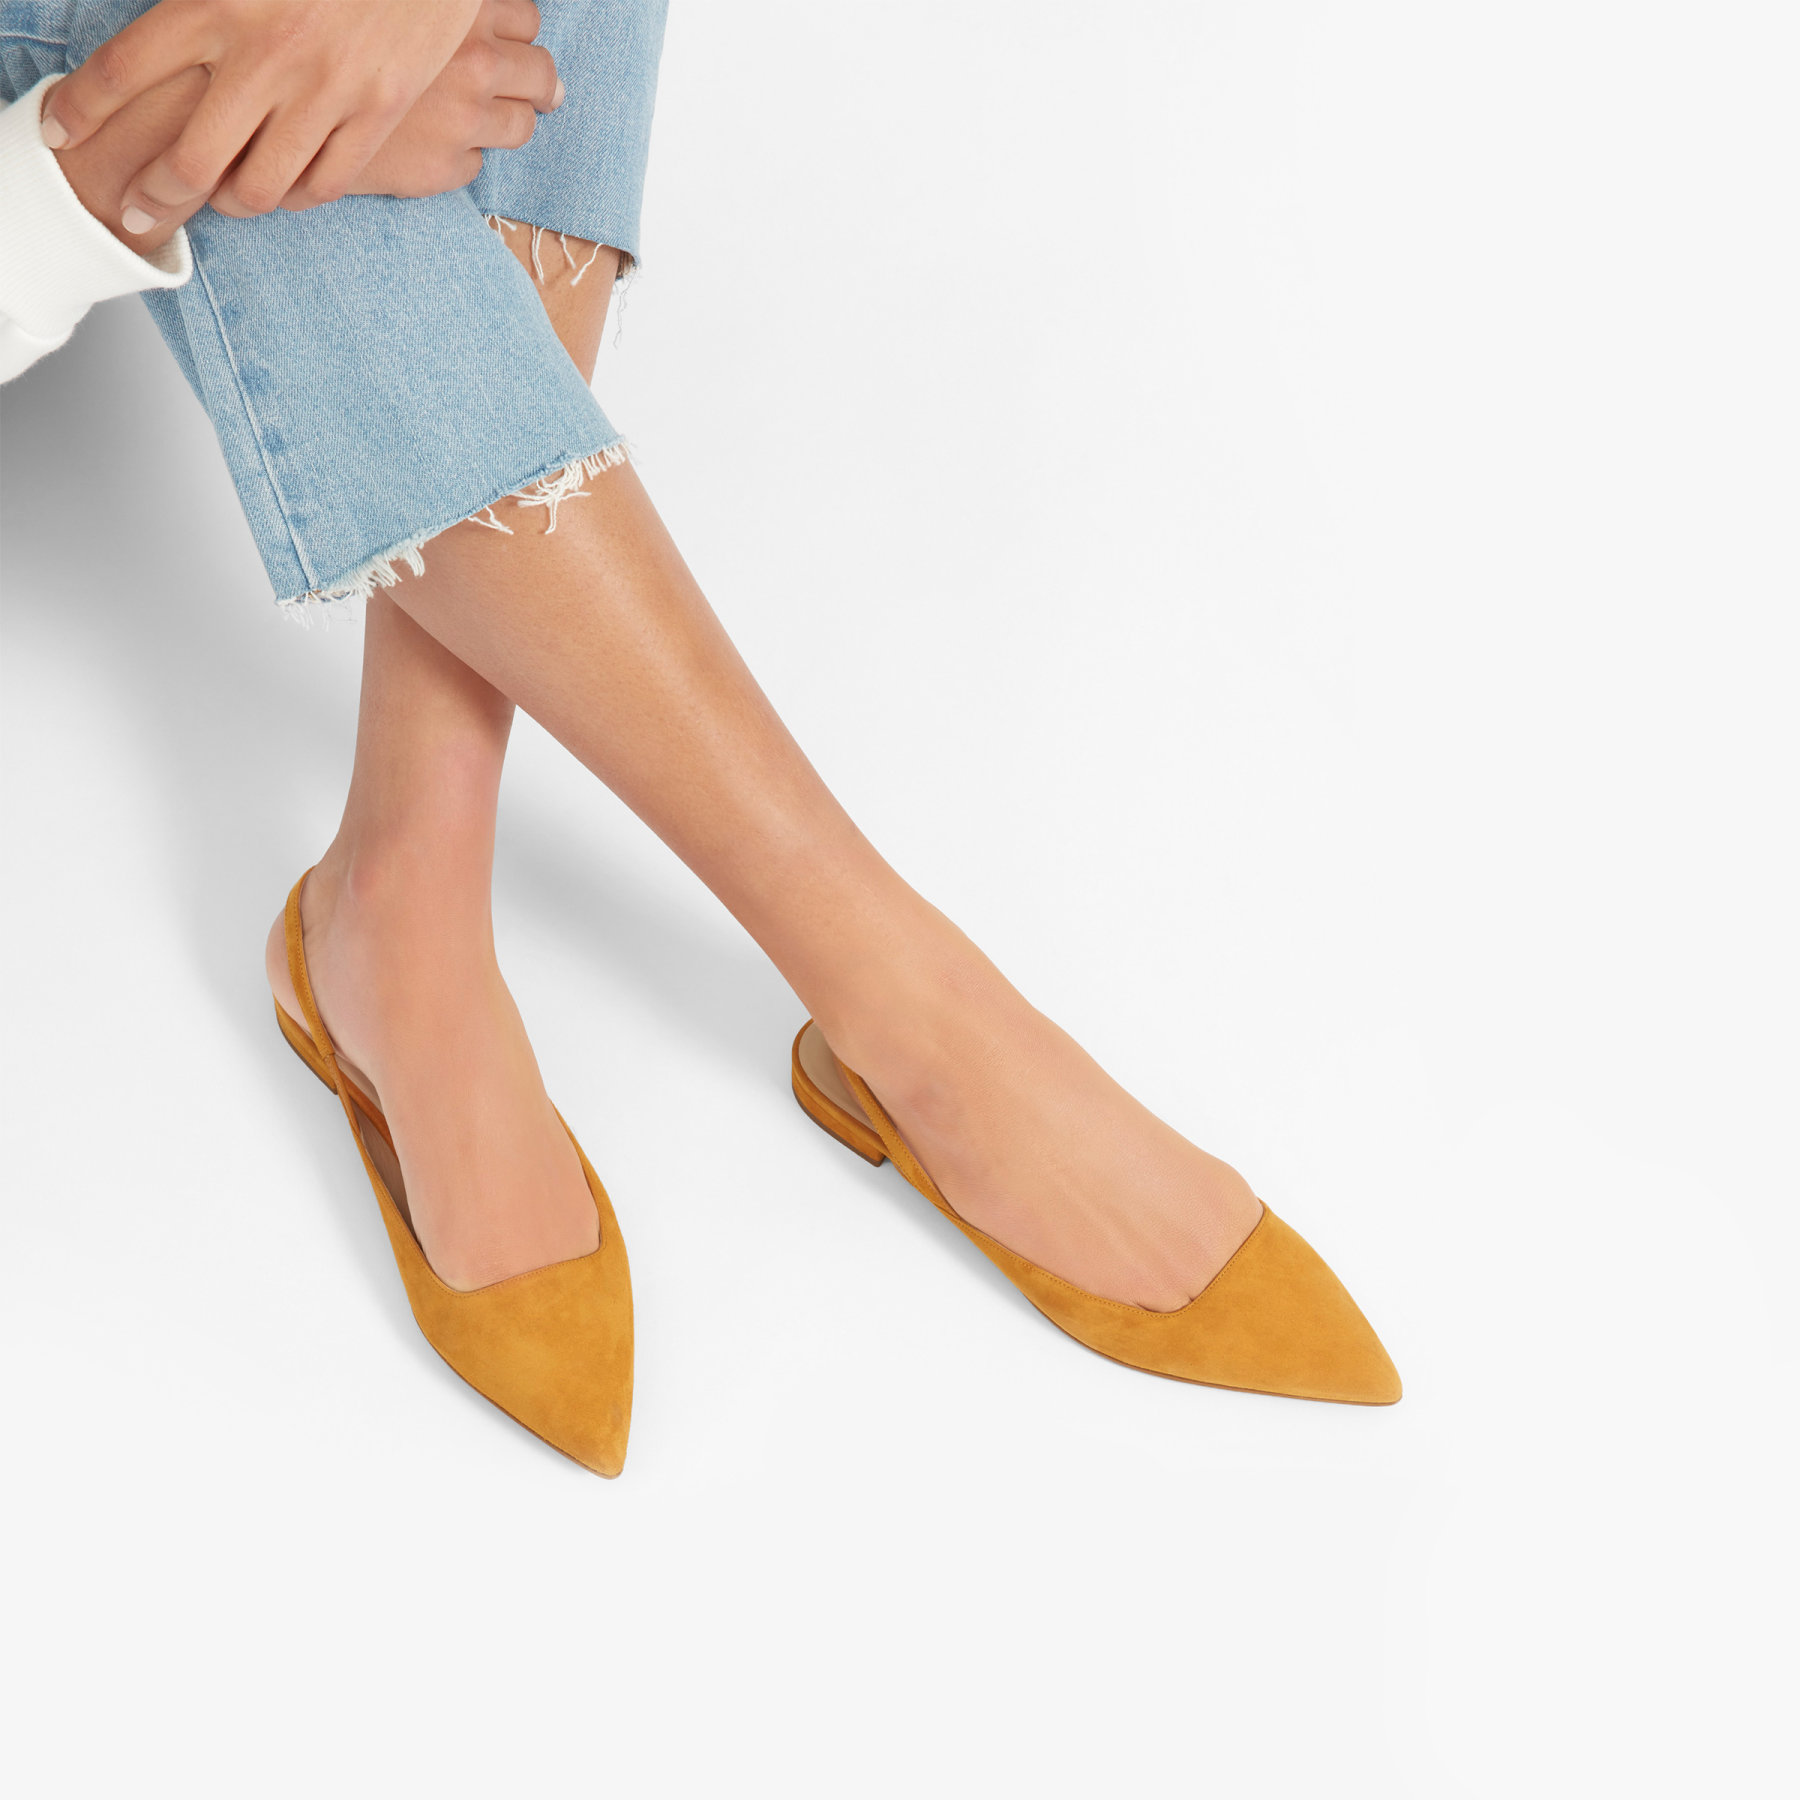 4b19eec57e2 17 of the Best Affordable Flats for Fall Winter